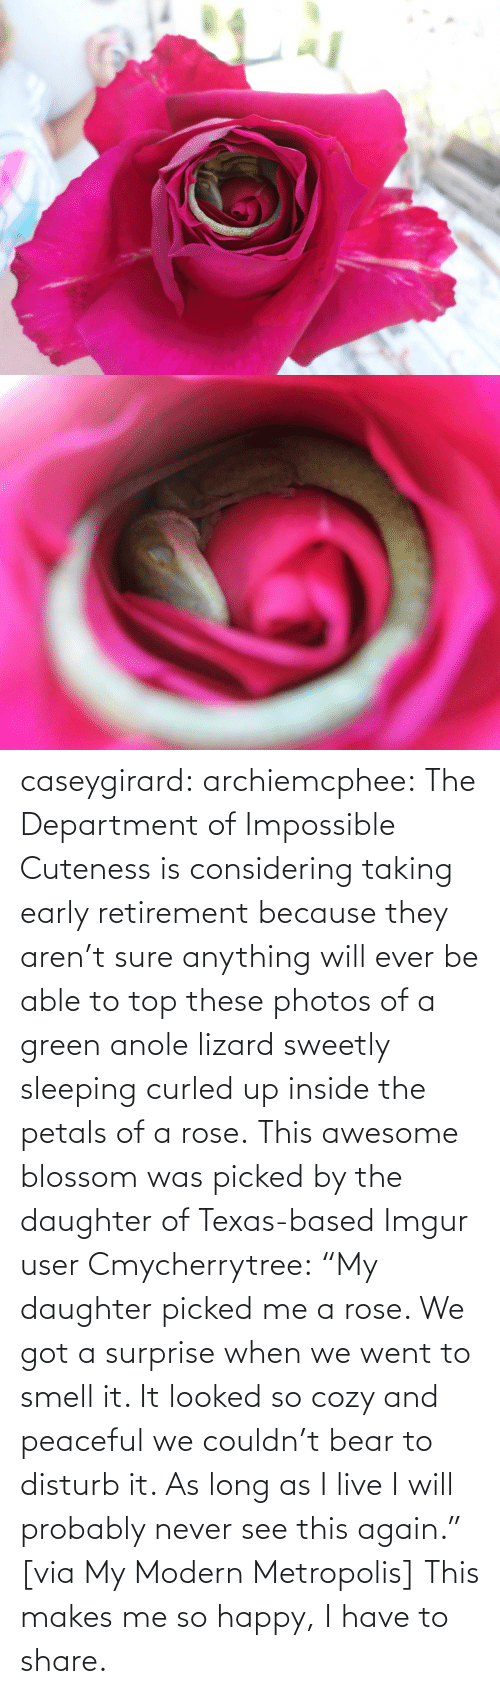 "Wiki: caseygirard:  archiemcphee:   The Department of Impossible Cuteness is considering taking early retirement because they aren't sure anything will ever be able to top these photos of a green anole lizard sweetly sleeping curled up inside the petals of a rose. This awesome blossom was picked by the daughter of Texas-based Imgur user Cmycherrytree: ""My daughter picked me a rose. We got a surprise when we went to smell it. It looked so cozy and peaceful we couldn't bear to disturb it. As long as I live I will probably never see this again."" [via My Modern Metropolis]   This makes me so happy, I have to share."